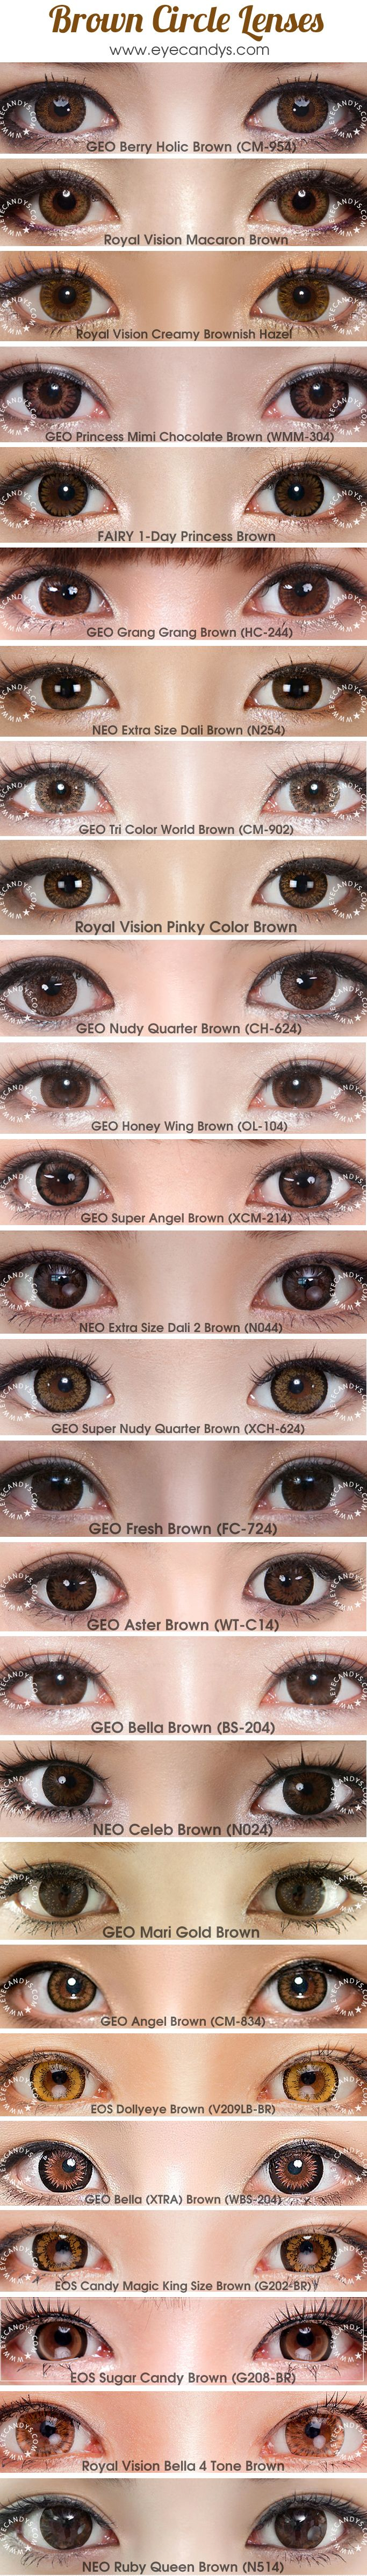 Brown circle lenses & fashion contacts in alluring shades of beige, hazel, honey and caramel. Make your eyes sweet and cute with natural enlarging effect. Shop authentic lenses with Free Shipping to USA, Canada and Worldwide! http://www.eyecandys.com/brown-hazel/